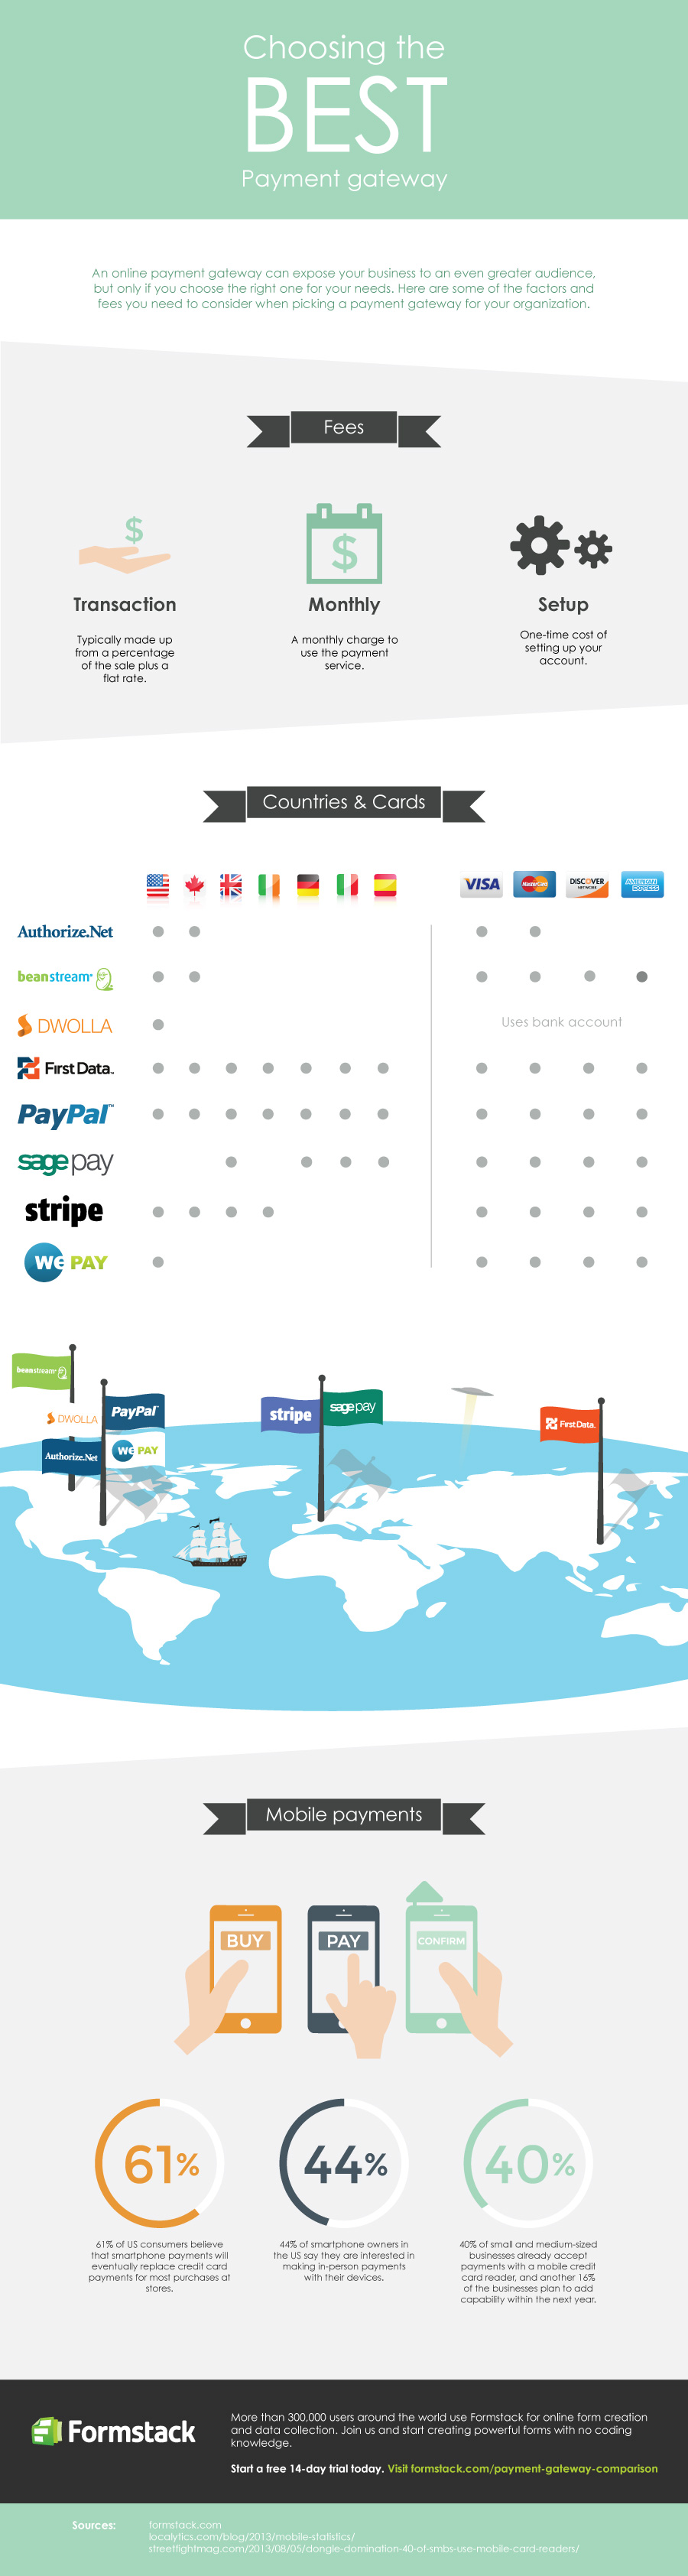 Choosing the Best Payment Gateway